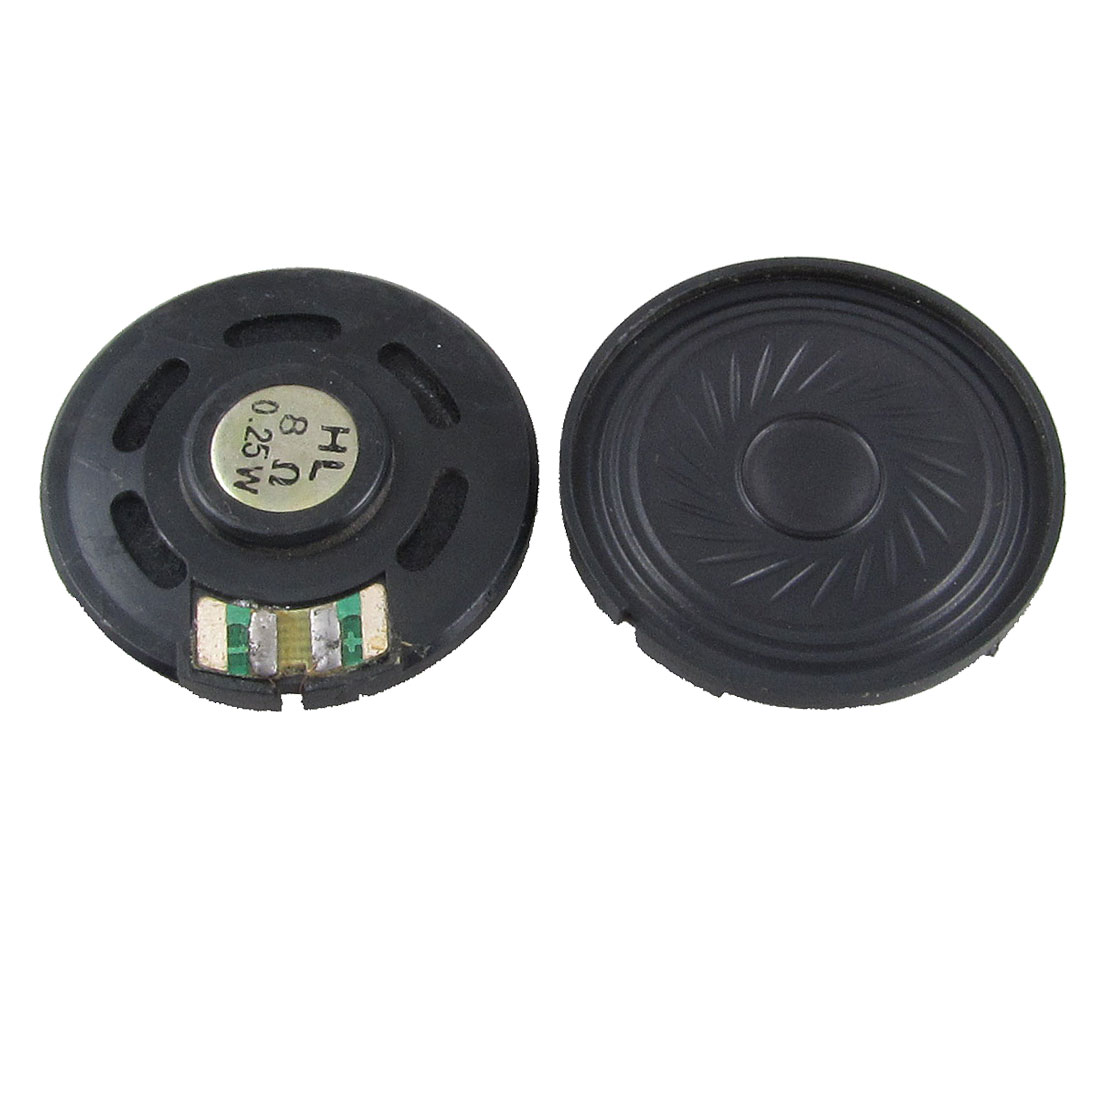 2 Pcs 40mm Diameter Black Round Magnet Plastic Loud Speaker Horn 8 Ohm 0.25W